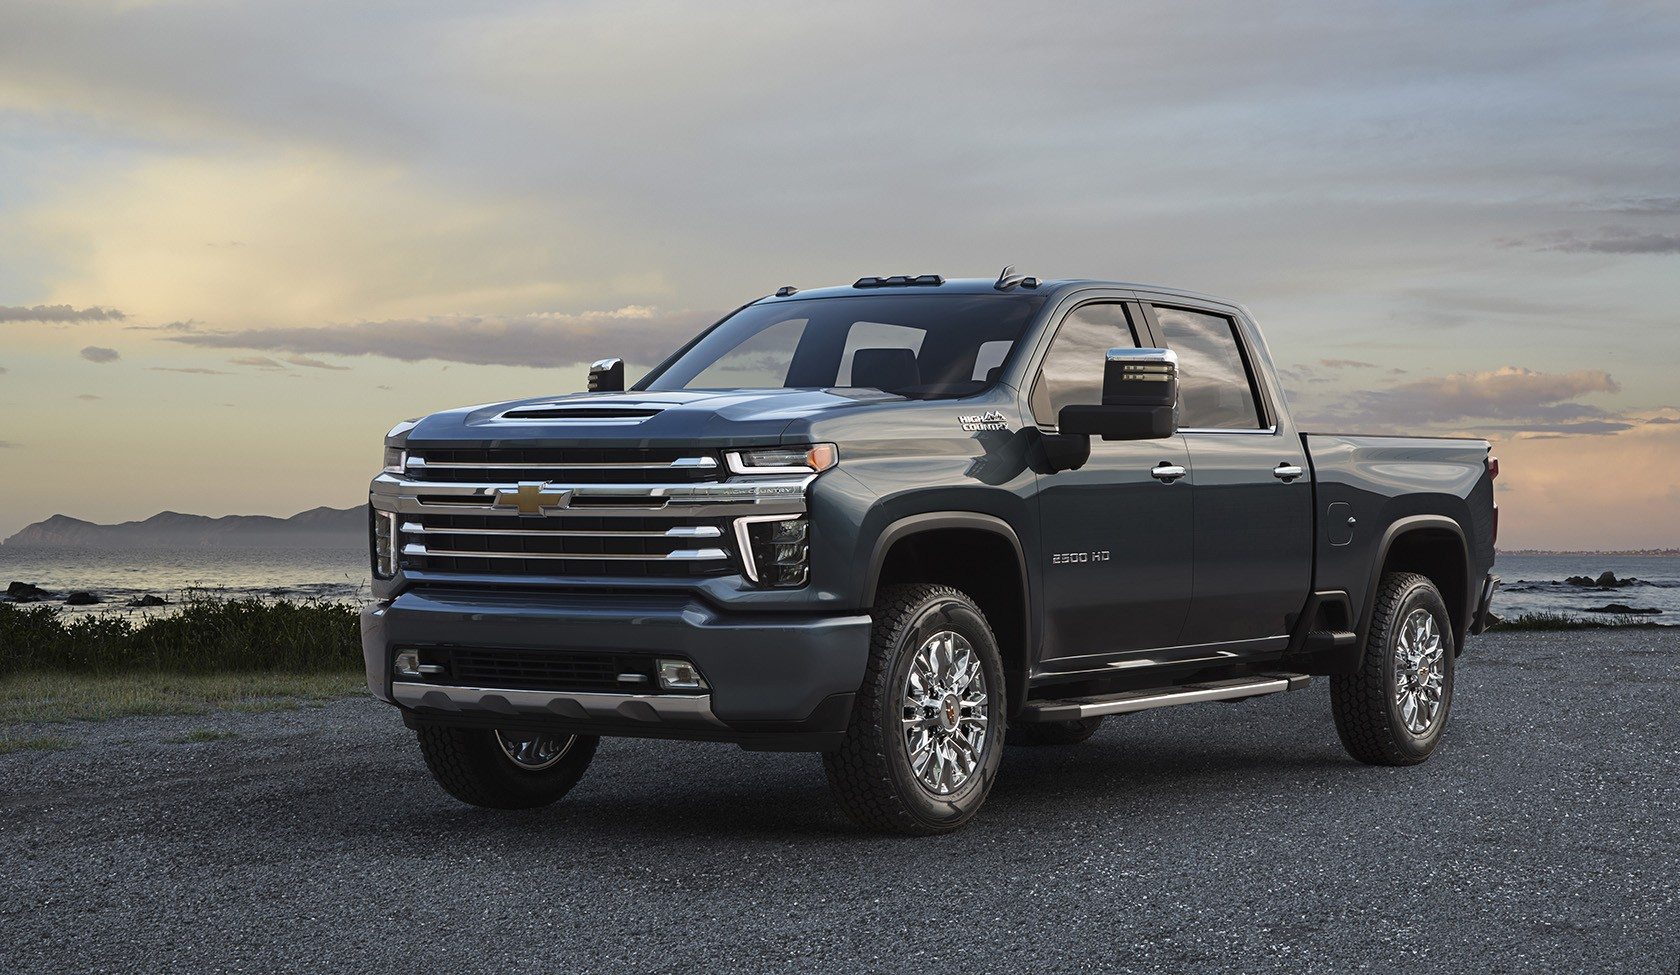 2020 Chevrolet Silverado 3500 Hd What We Know So Far Eagle Ridge Gm